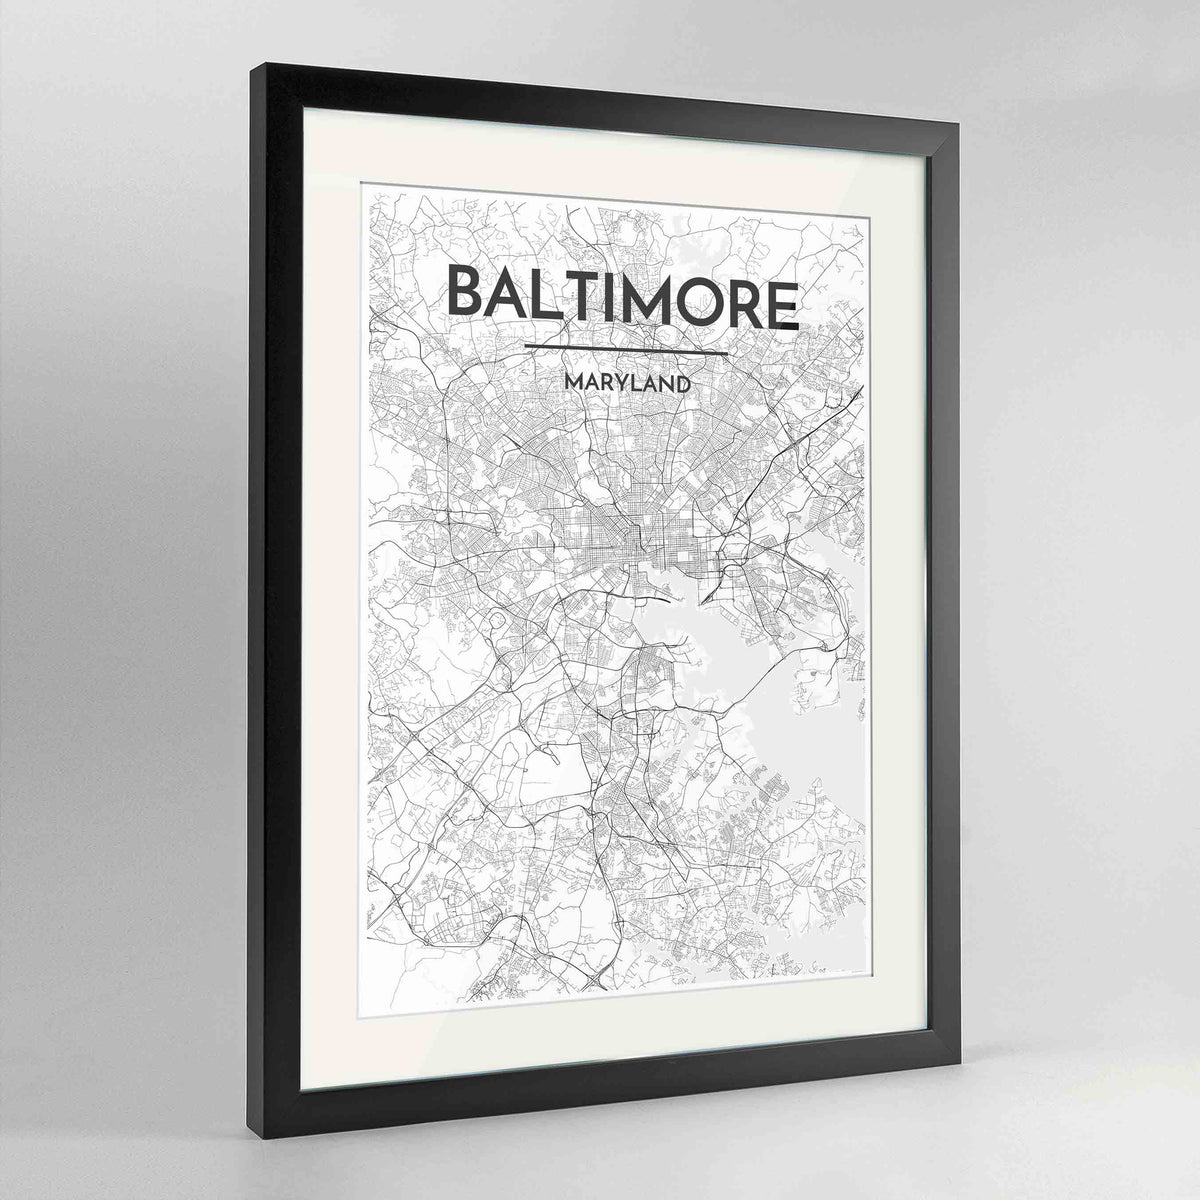 "Framed Baltimore Map Art Print 24x36"" Contemporary Black frame Point Two Design Group"